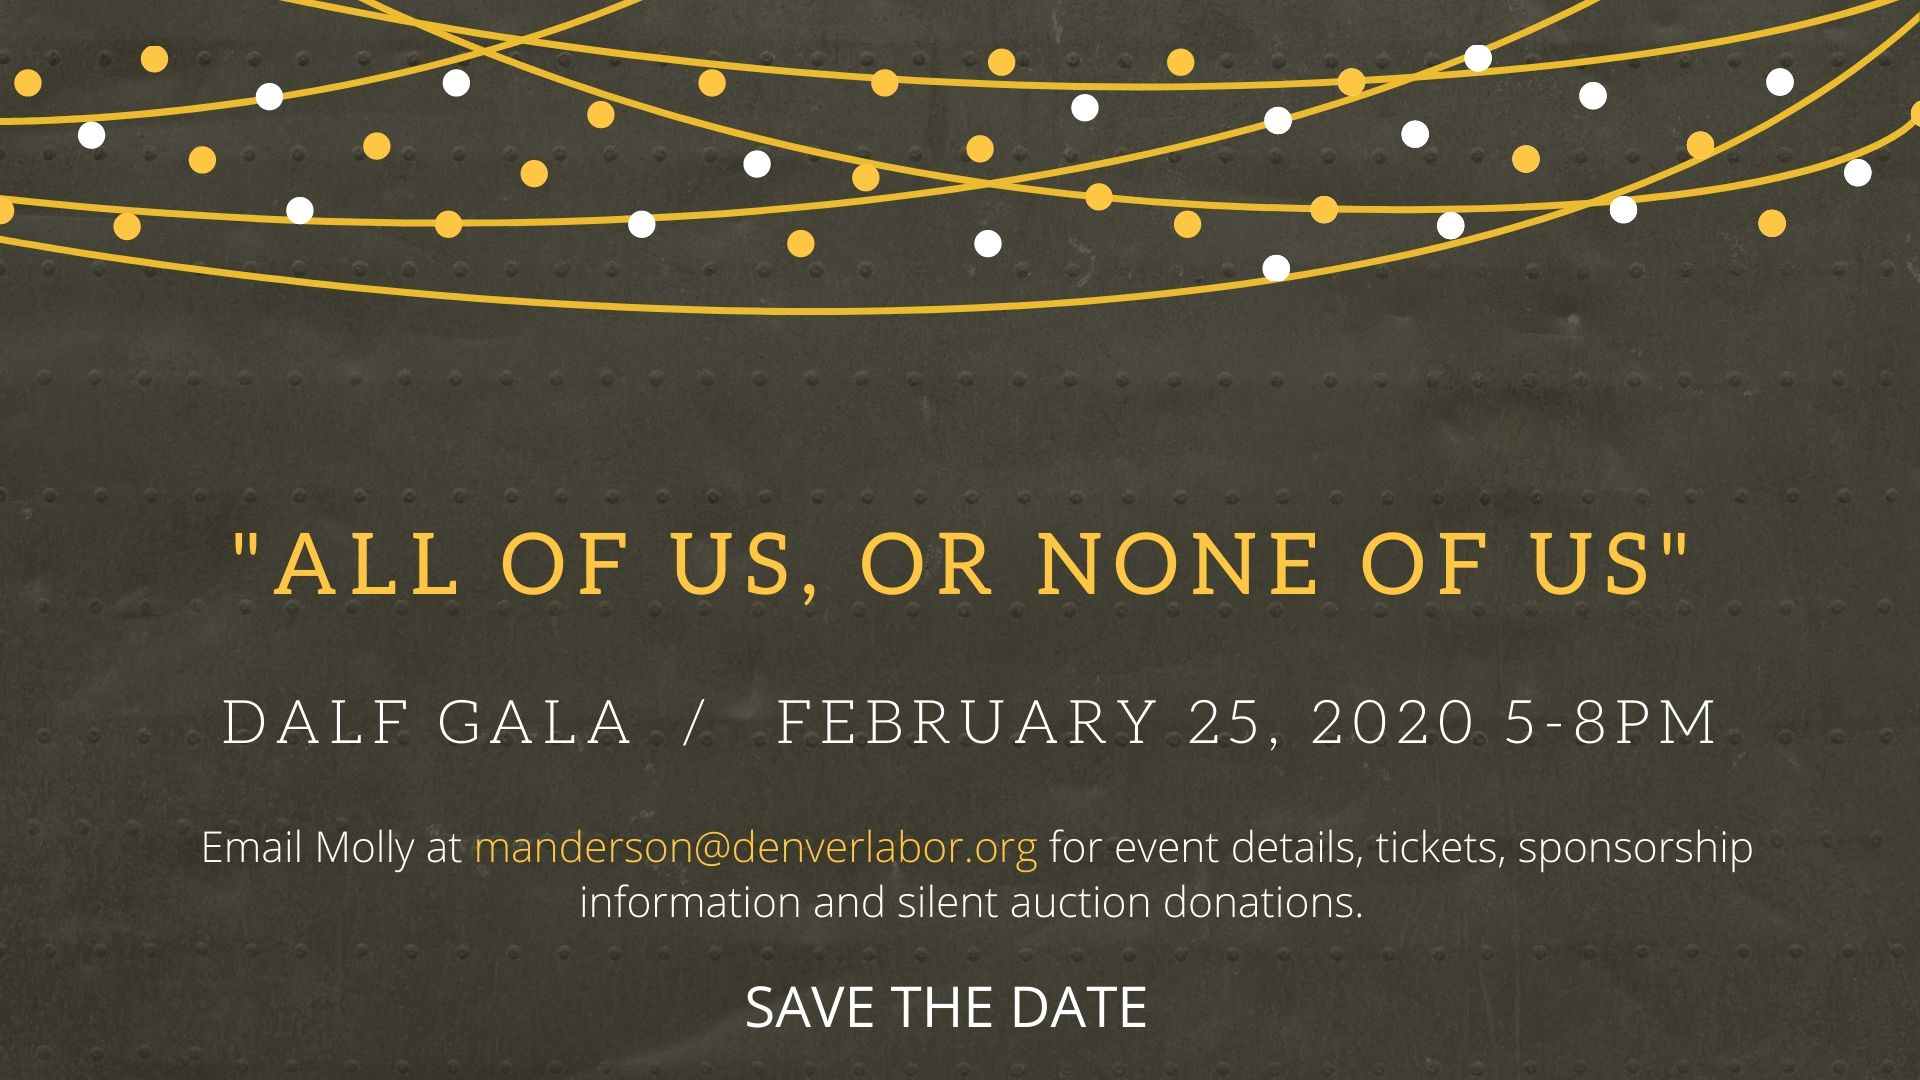 Gala_save_the_date_fb_event